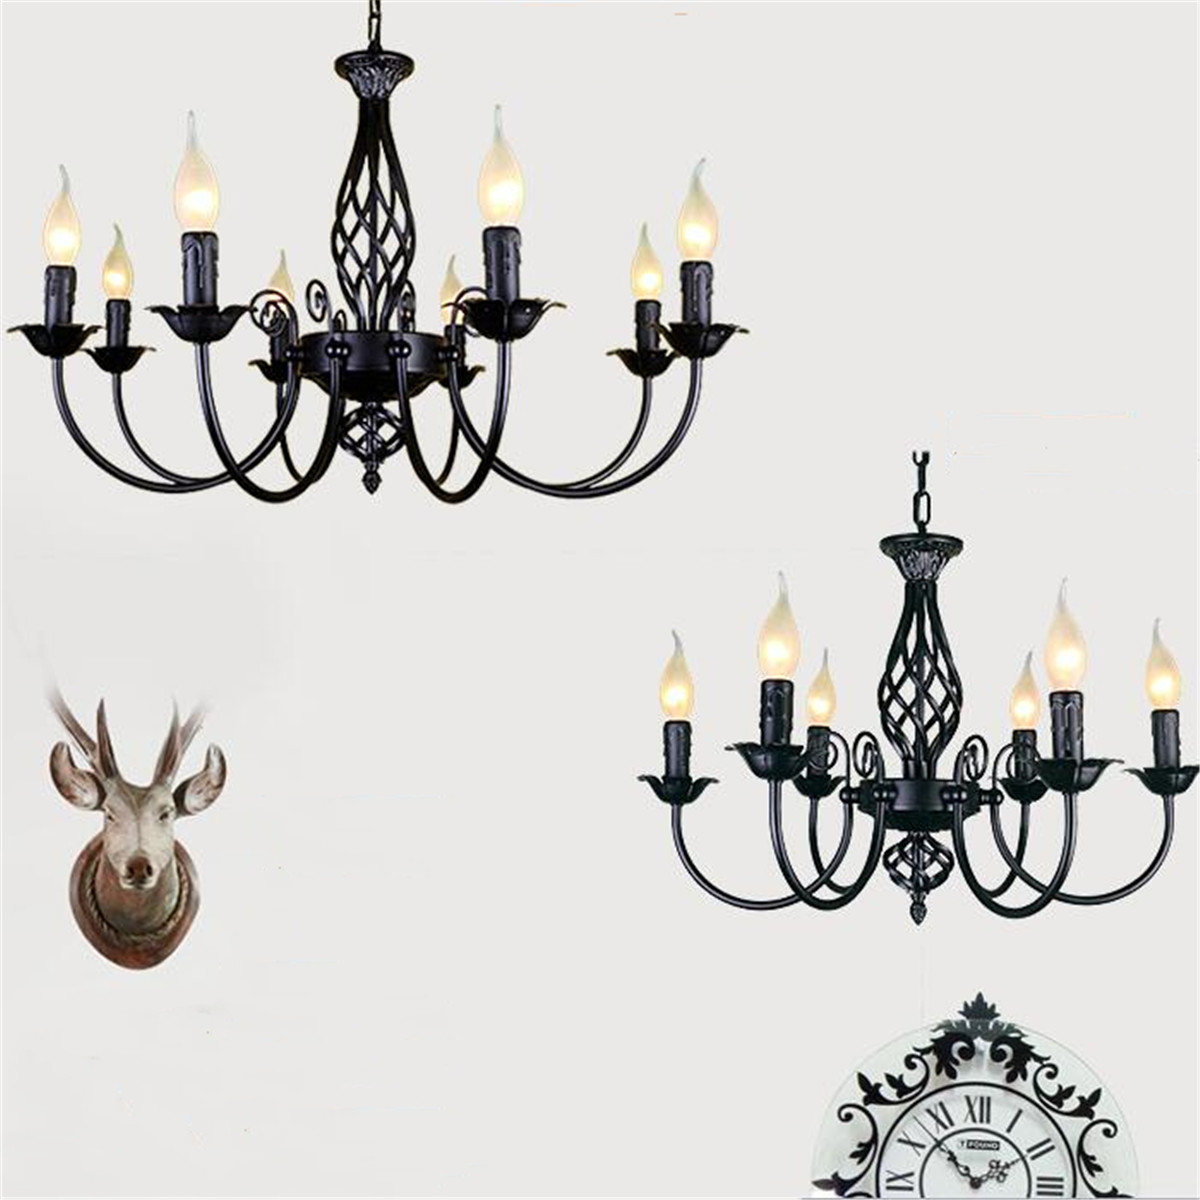 Industrial Chandelier Wrought Iron 3 4 5 6 Light Chandeliers Vintage Candlestick Black White Hanging Lamp For Bar Restaurant